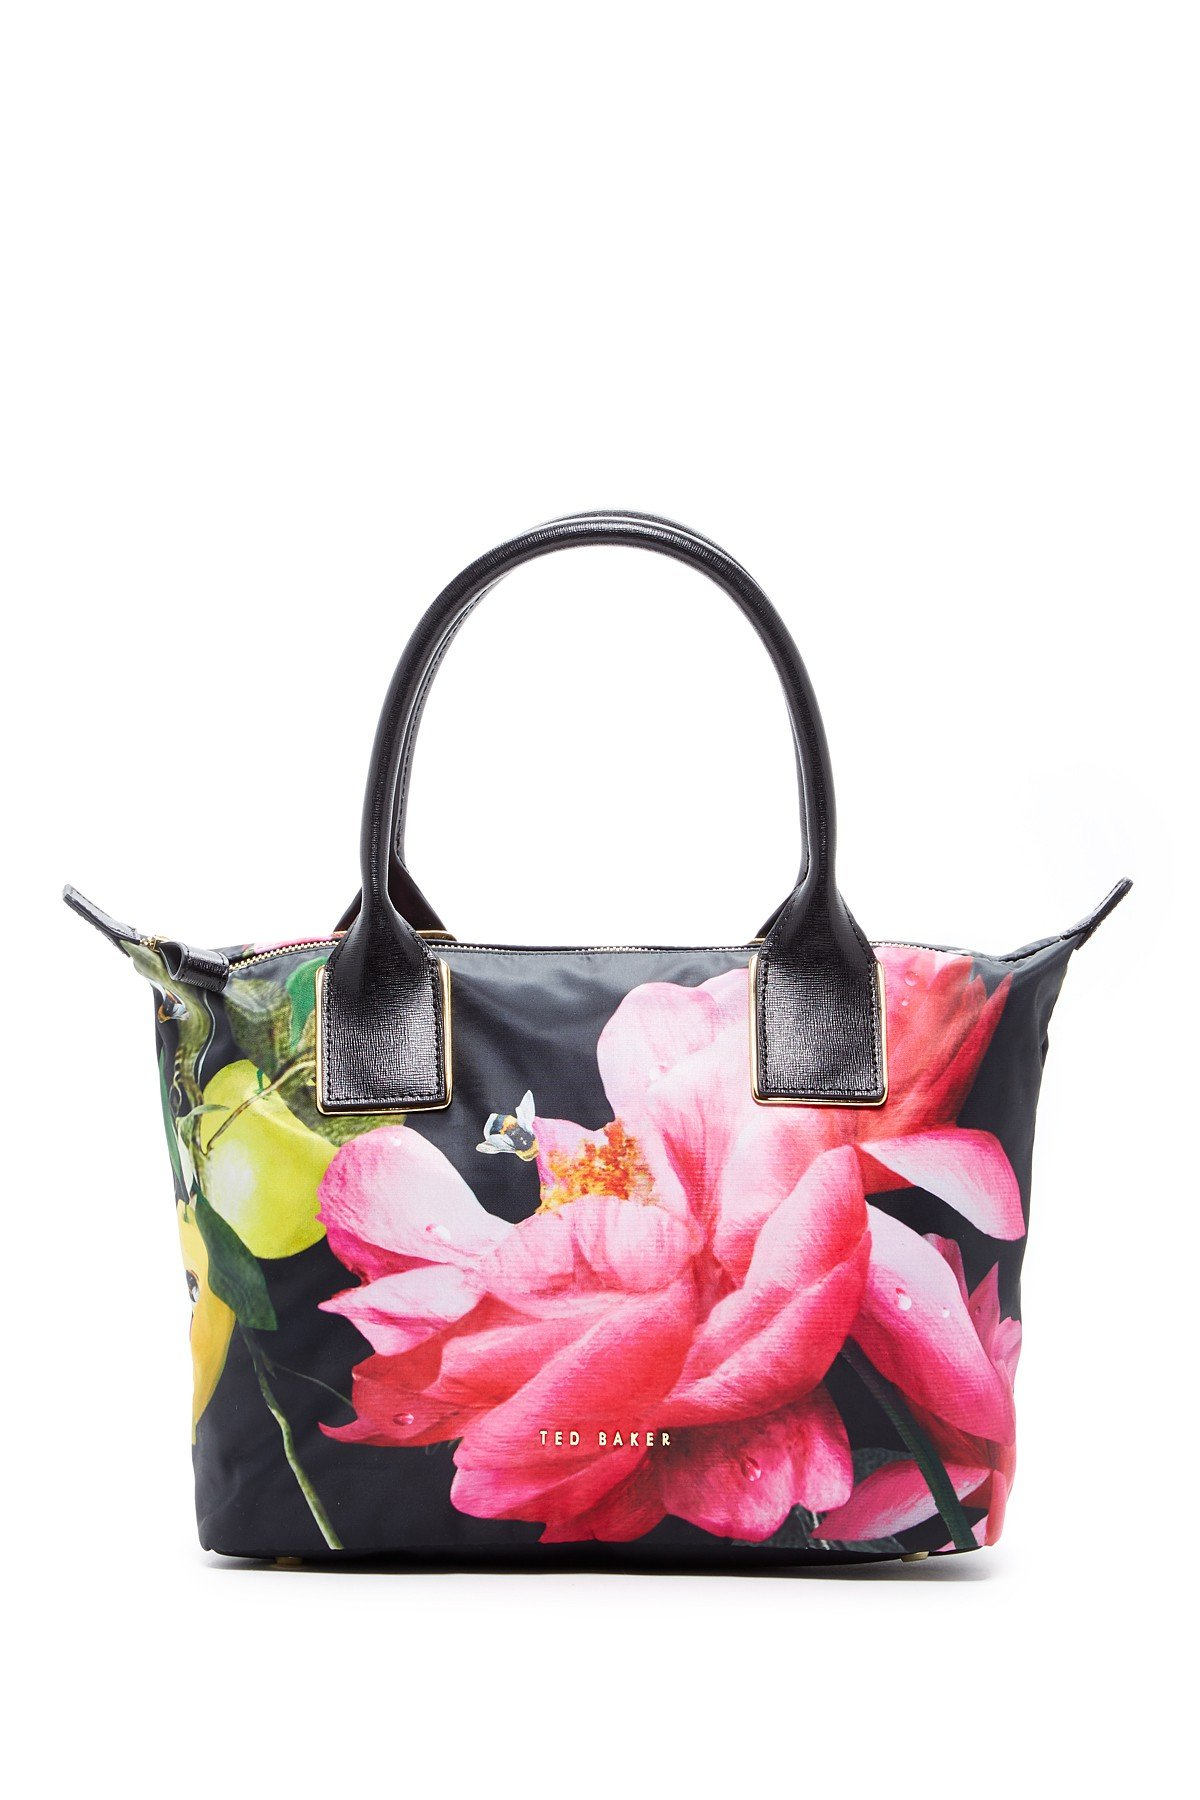 a3ecbdc619dd1b Buy Ted Baker London Citrus Bloom Printed Tote Bag Black in Cheap ...